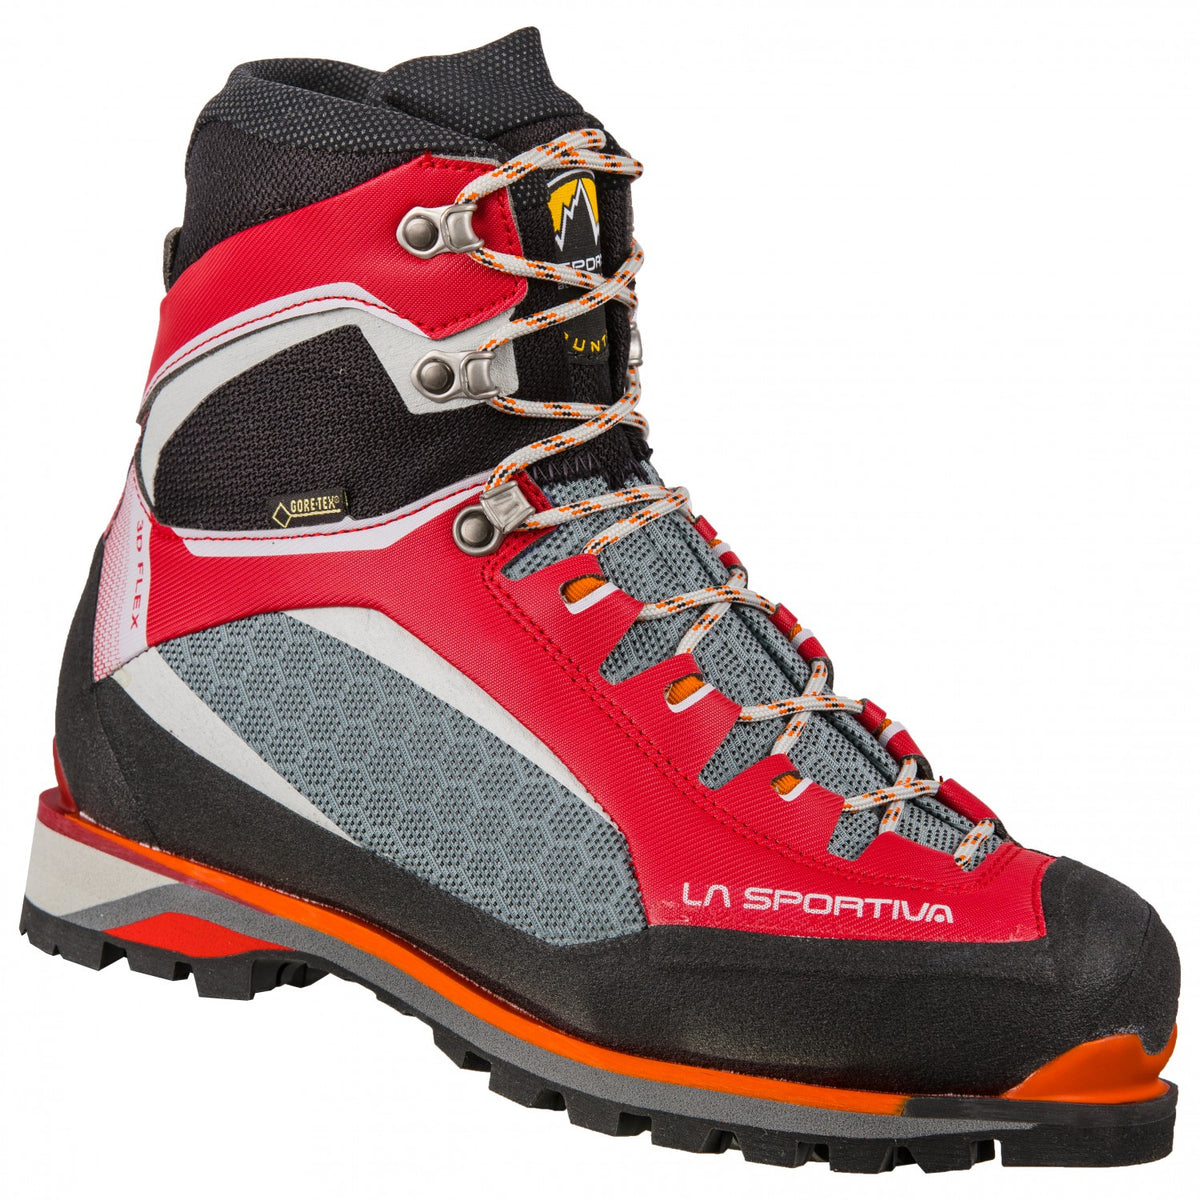 La Sportiva Trango Tower Extreme GTX Womens mountaineering boot, outer side view in Red/black/grey